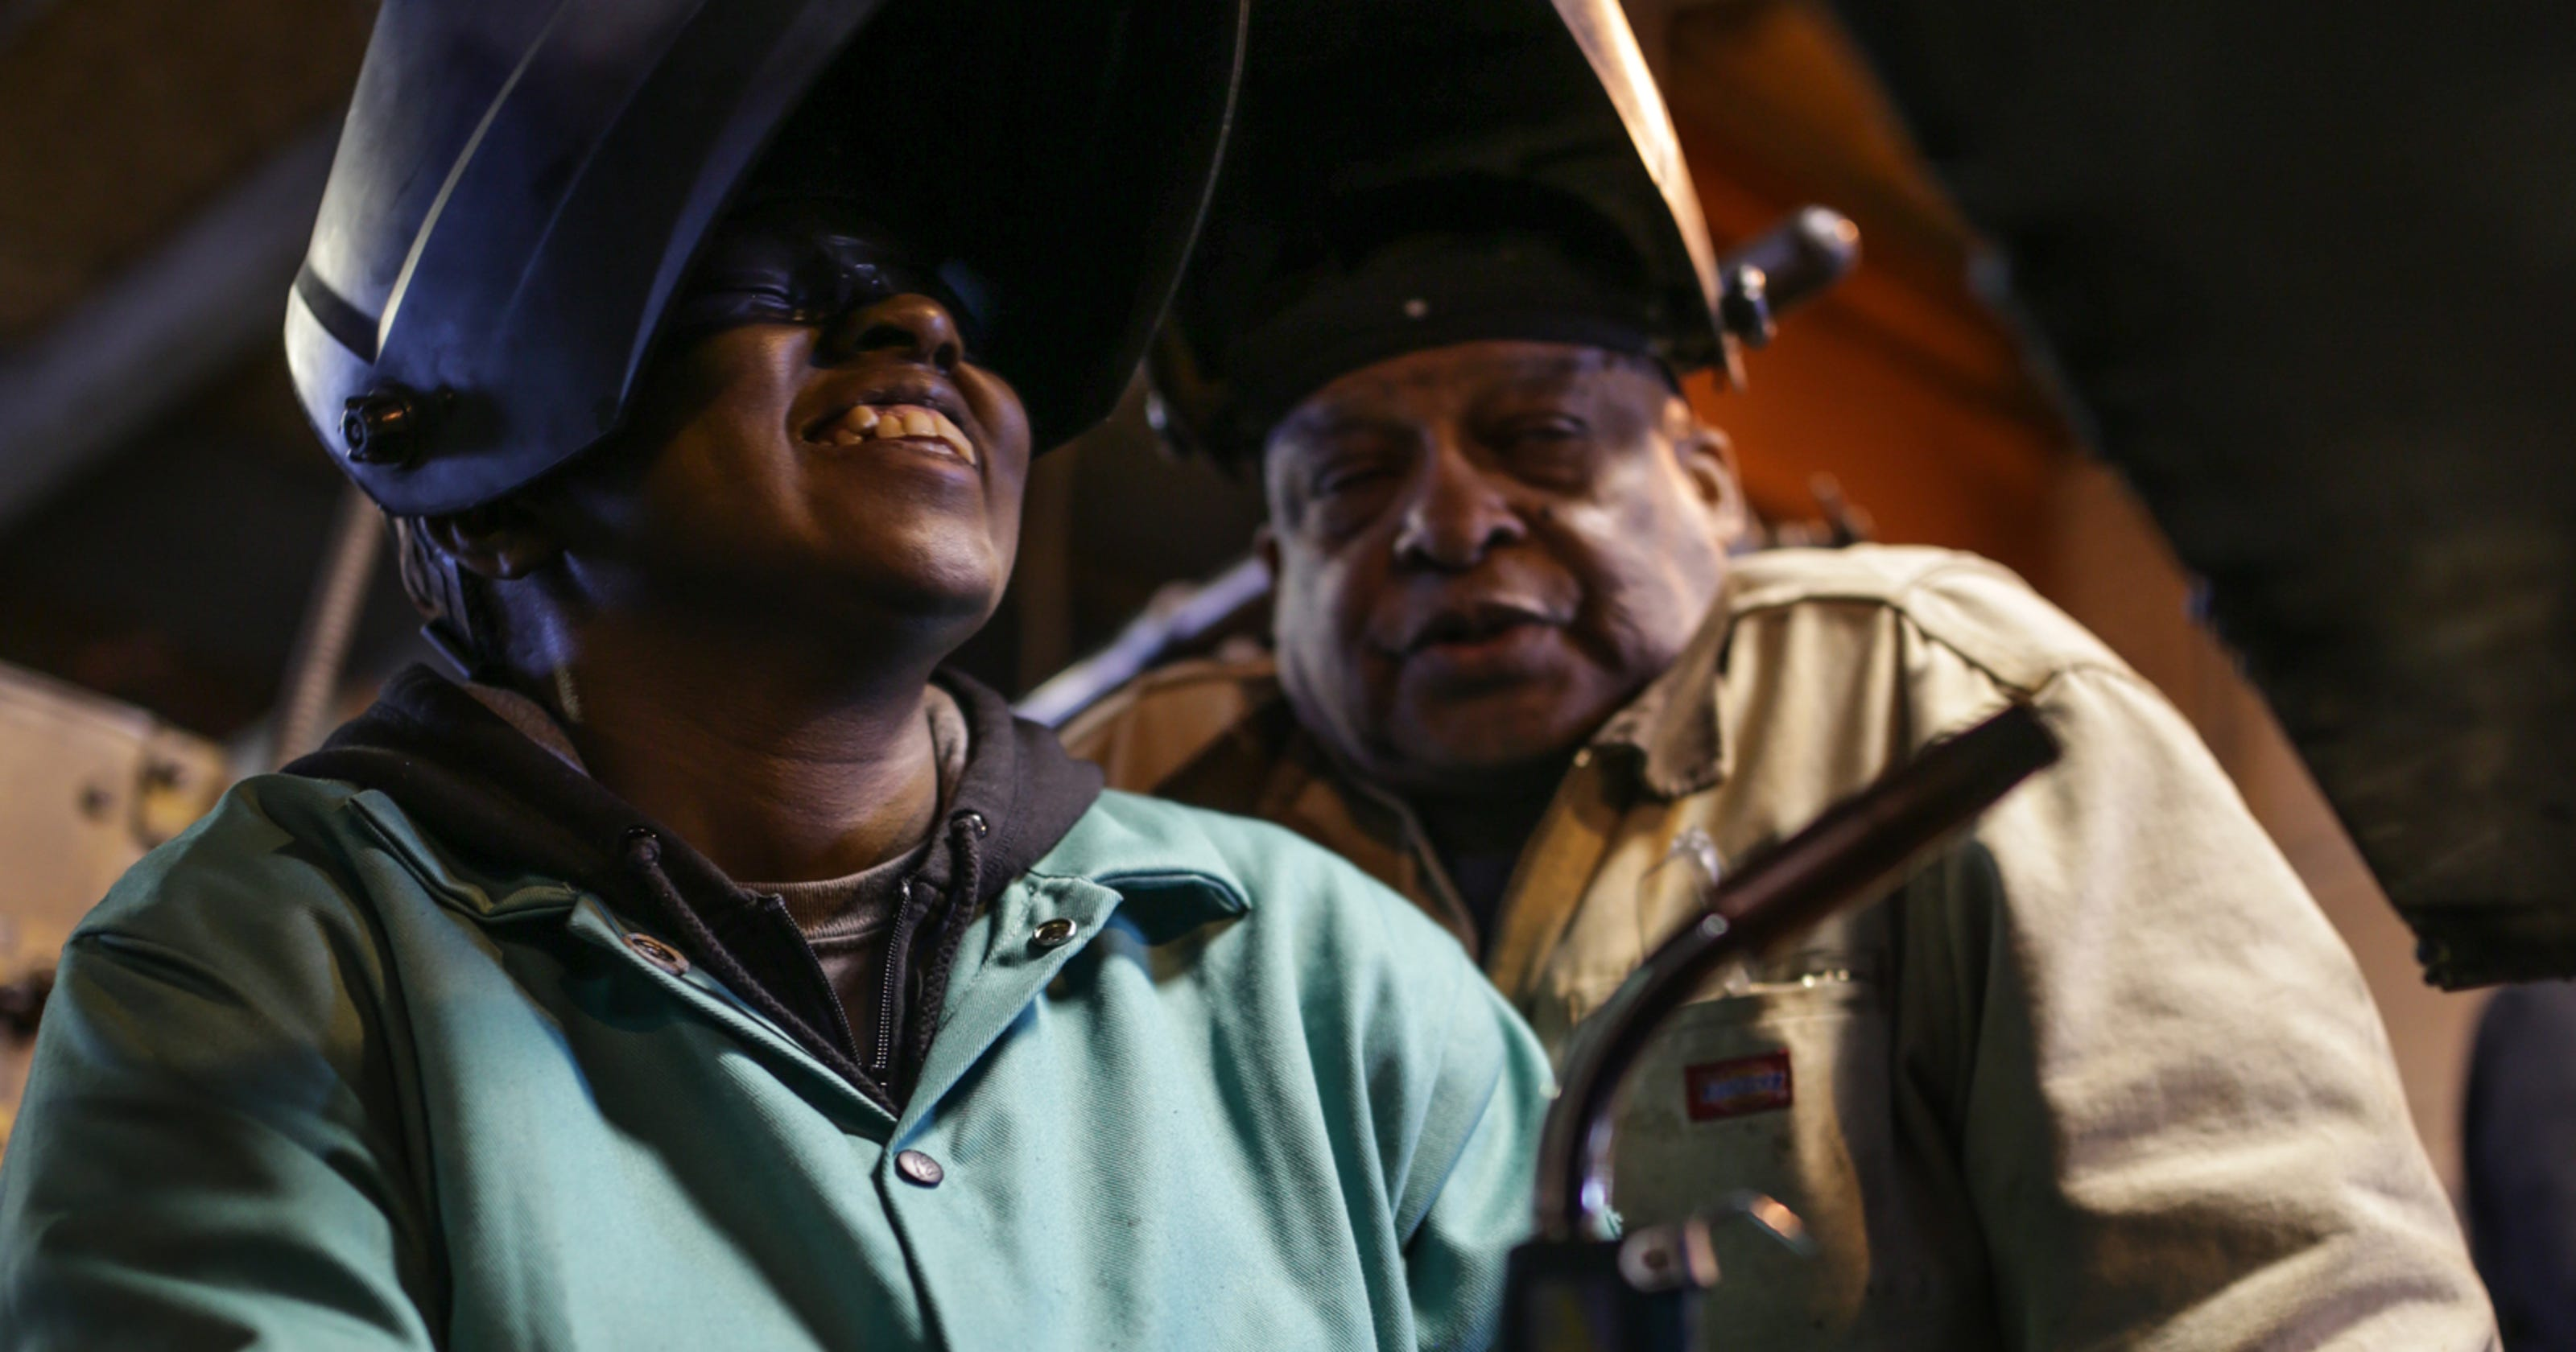 Women Who Weld Male Dominated Skill Aims For Parity